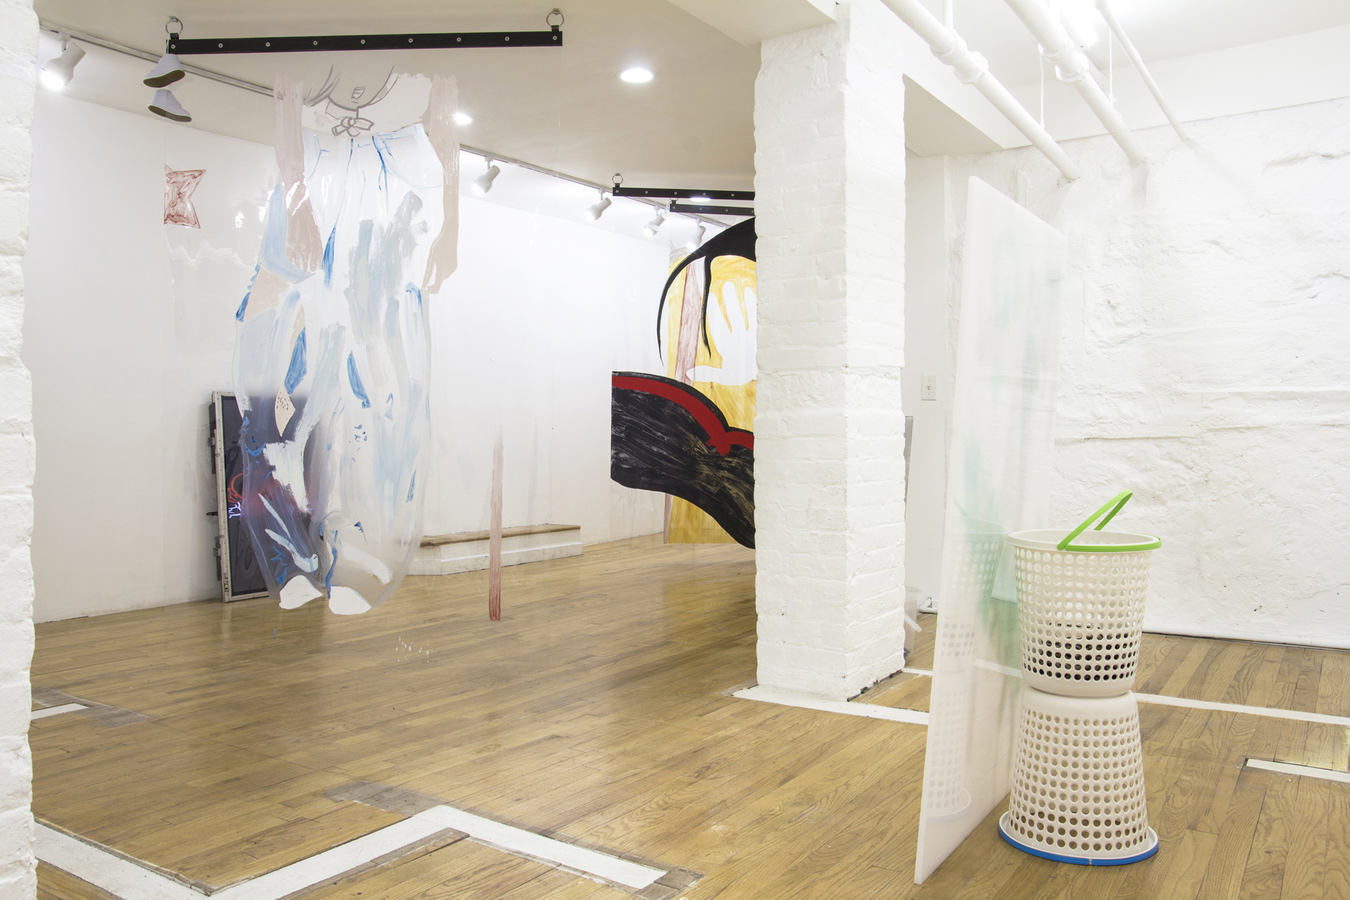 1_Raque_Ford_Erika_Hickle_Absolutely_Yours_321_Gallery_Brooklyn